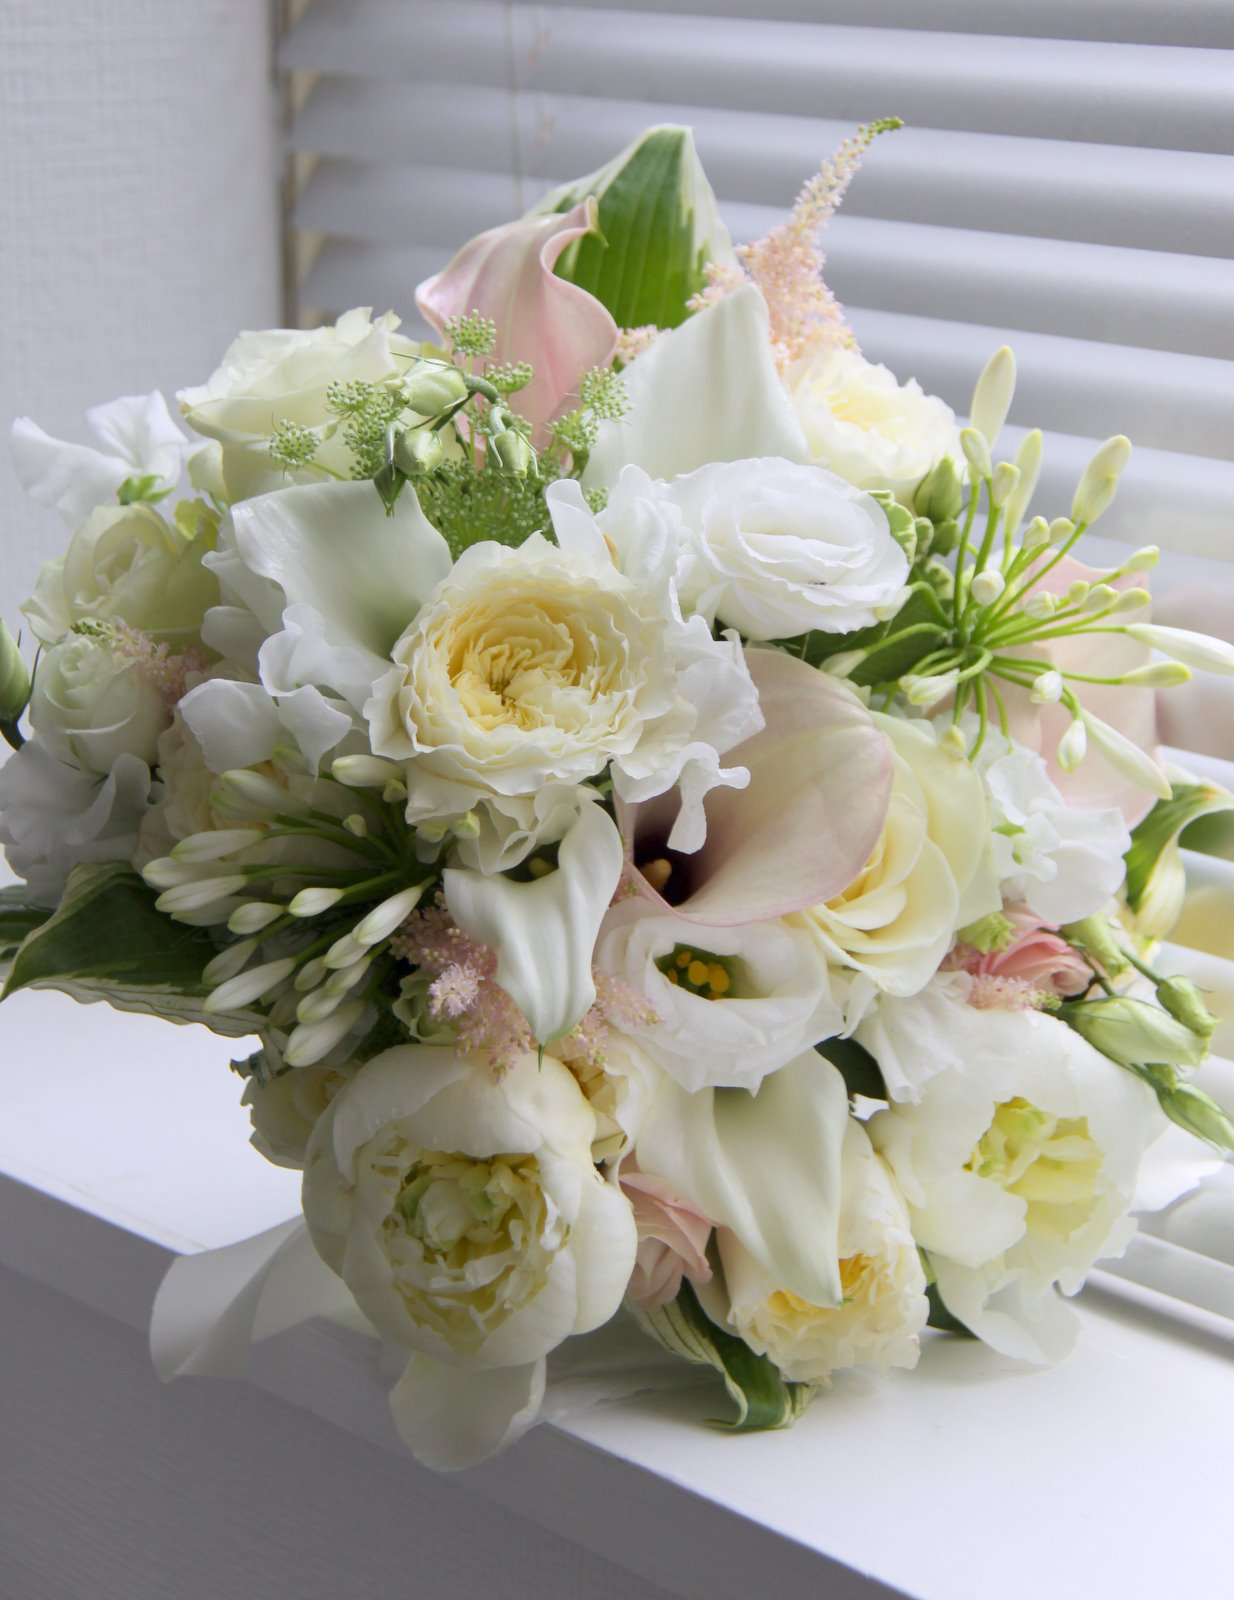 The flower magician gorgeous ivory and blush pink wedding bouquet gorgeous ivory and blush pink wedding bouquet izmirmasajfo Choice Image